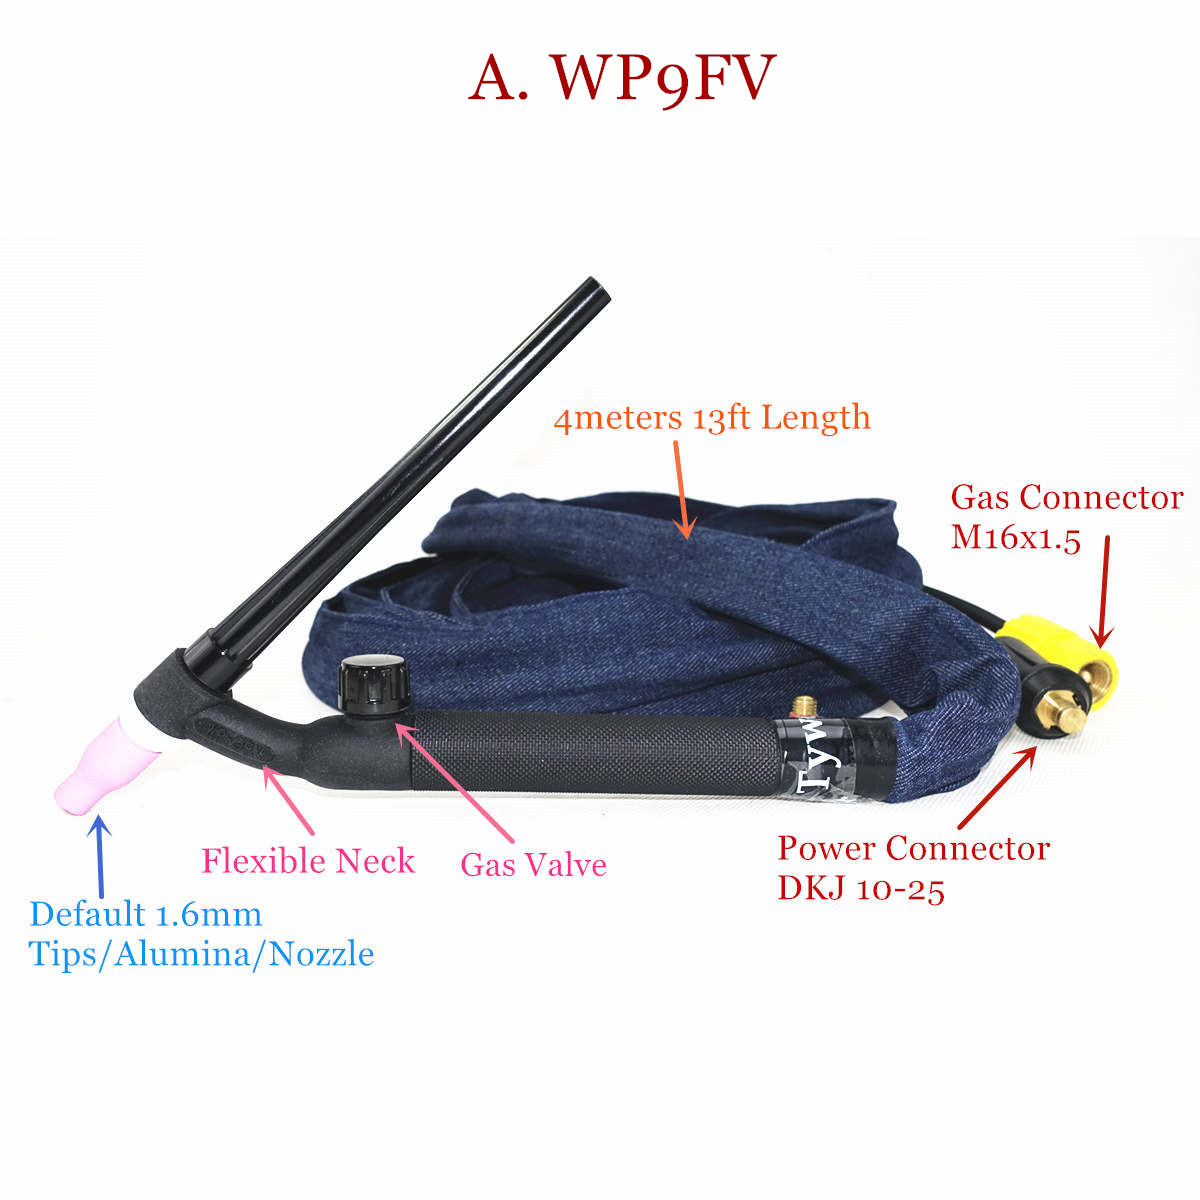 Tools : WP9FV TIG Torch 4m 13ft Gas Tungsten Arc Welding Torch WP9 Argon Air Cooled Flexible Neck Gas Valve TIG Welding Torch